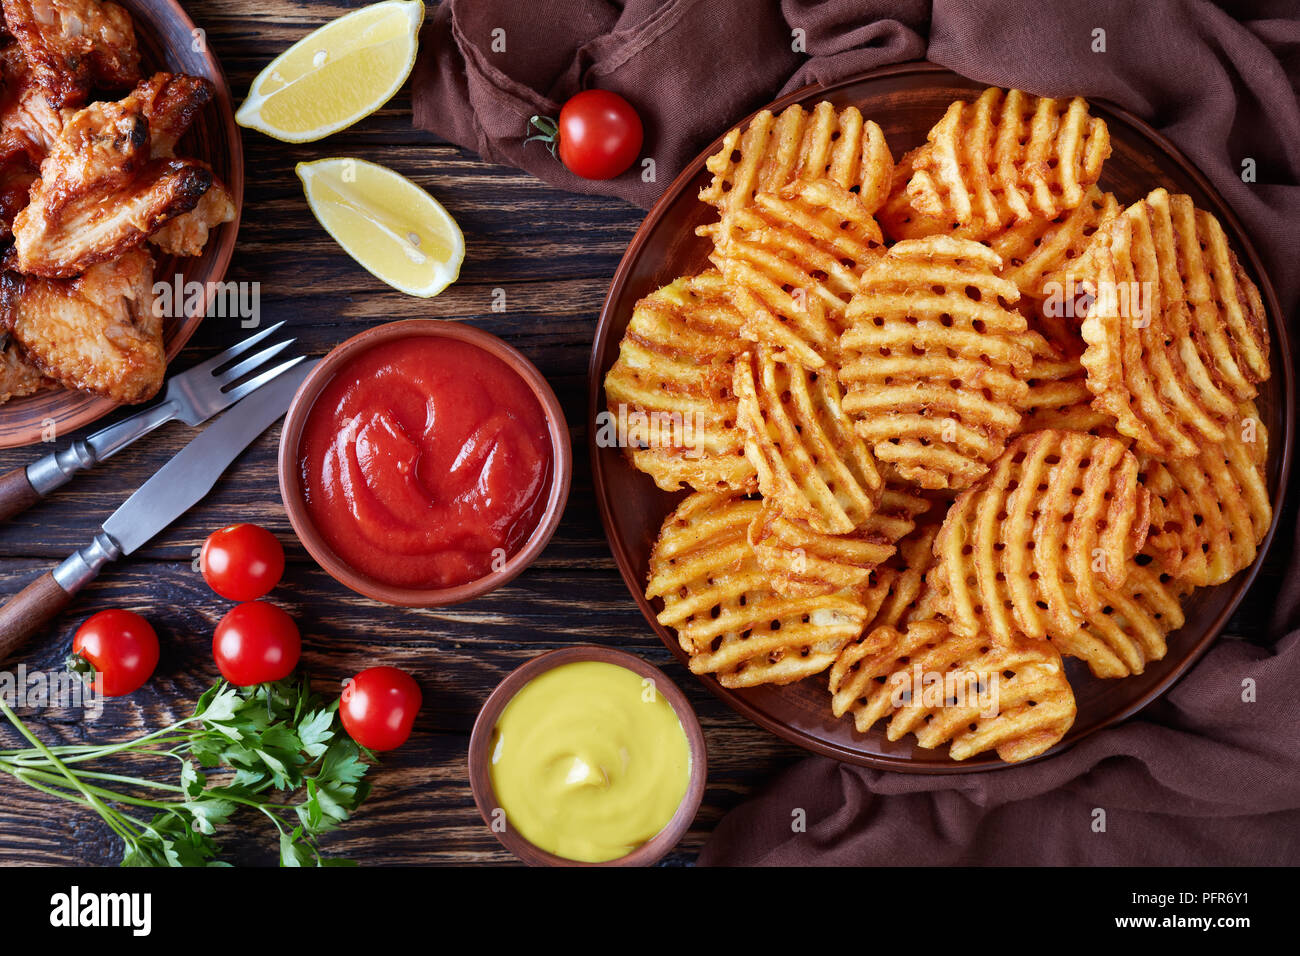 fried chicken wings and Crispy Potato Criss Cross Fries on a clay plates on a wooden table with mustard and tomato sauce dipping, view from above, fla - Stock Image